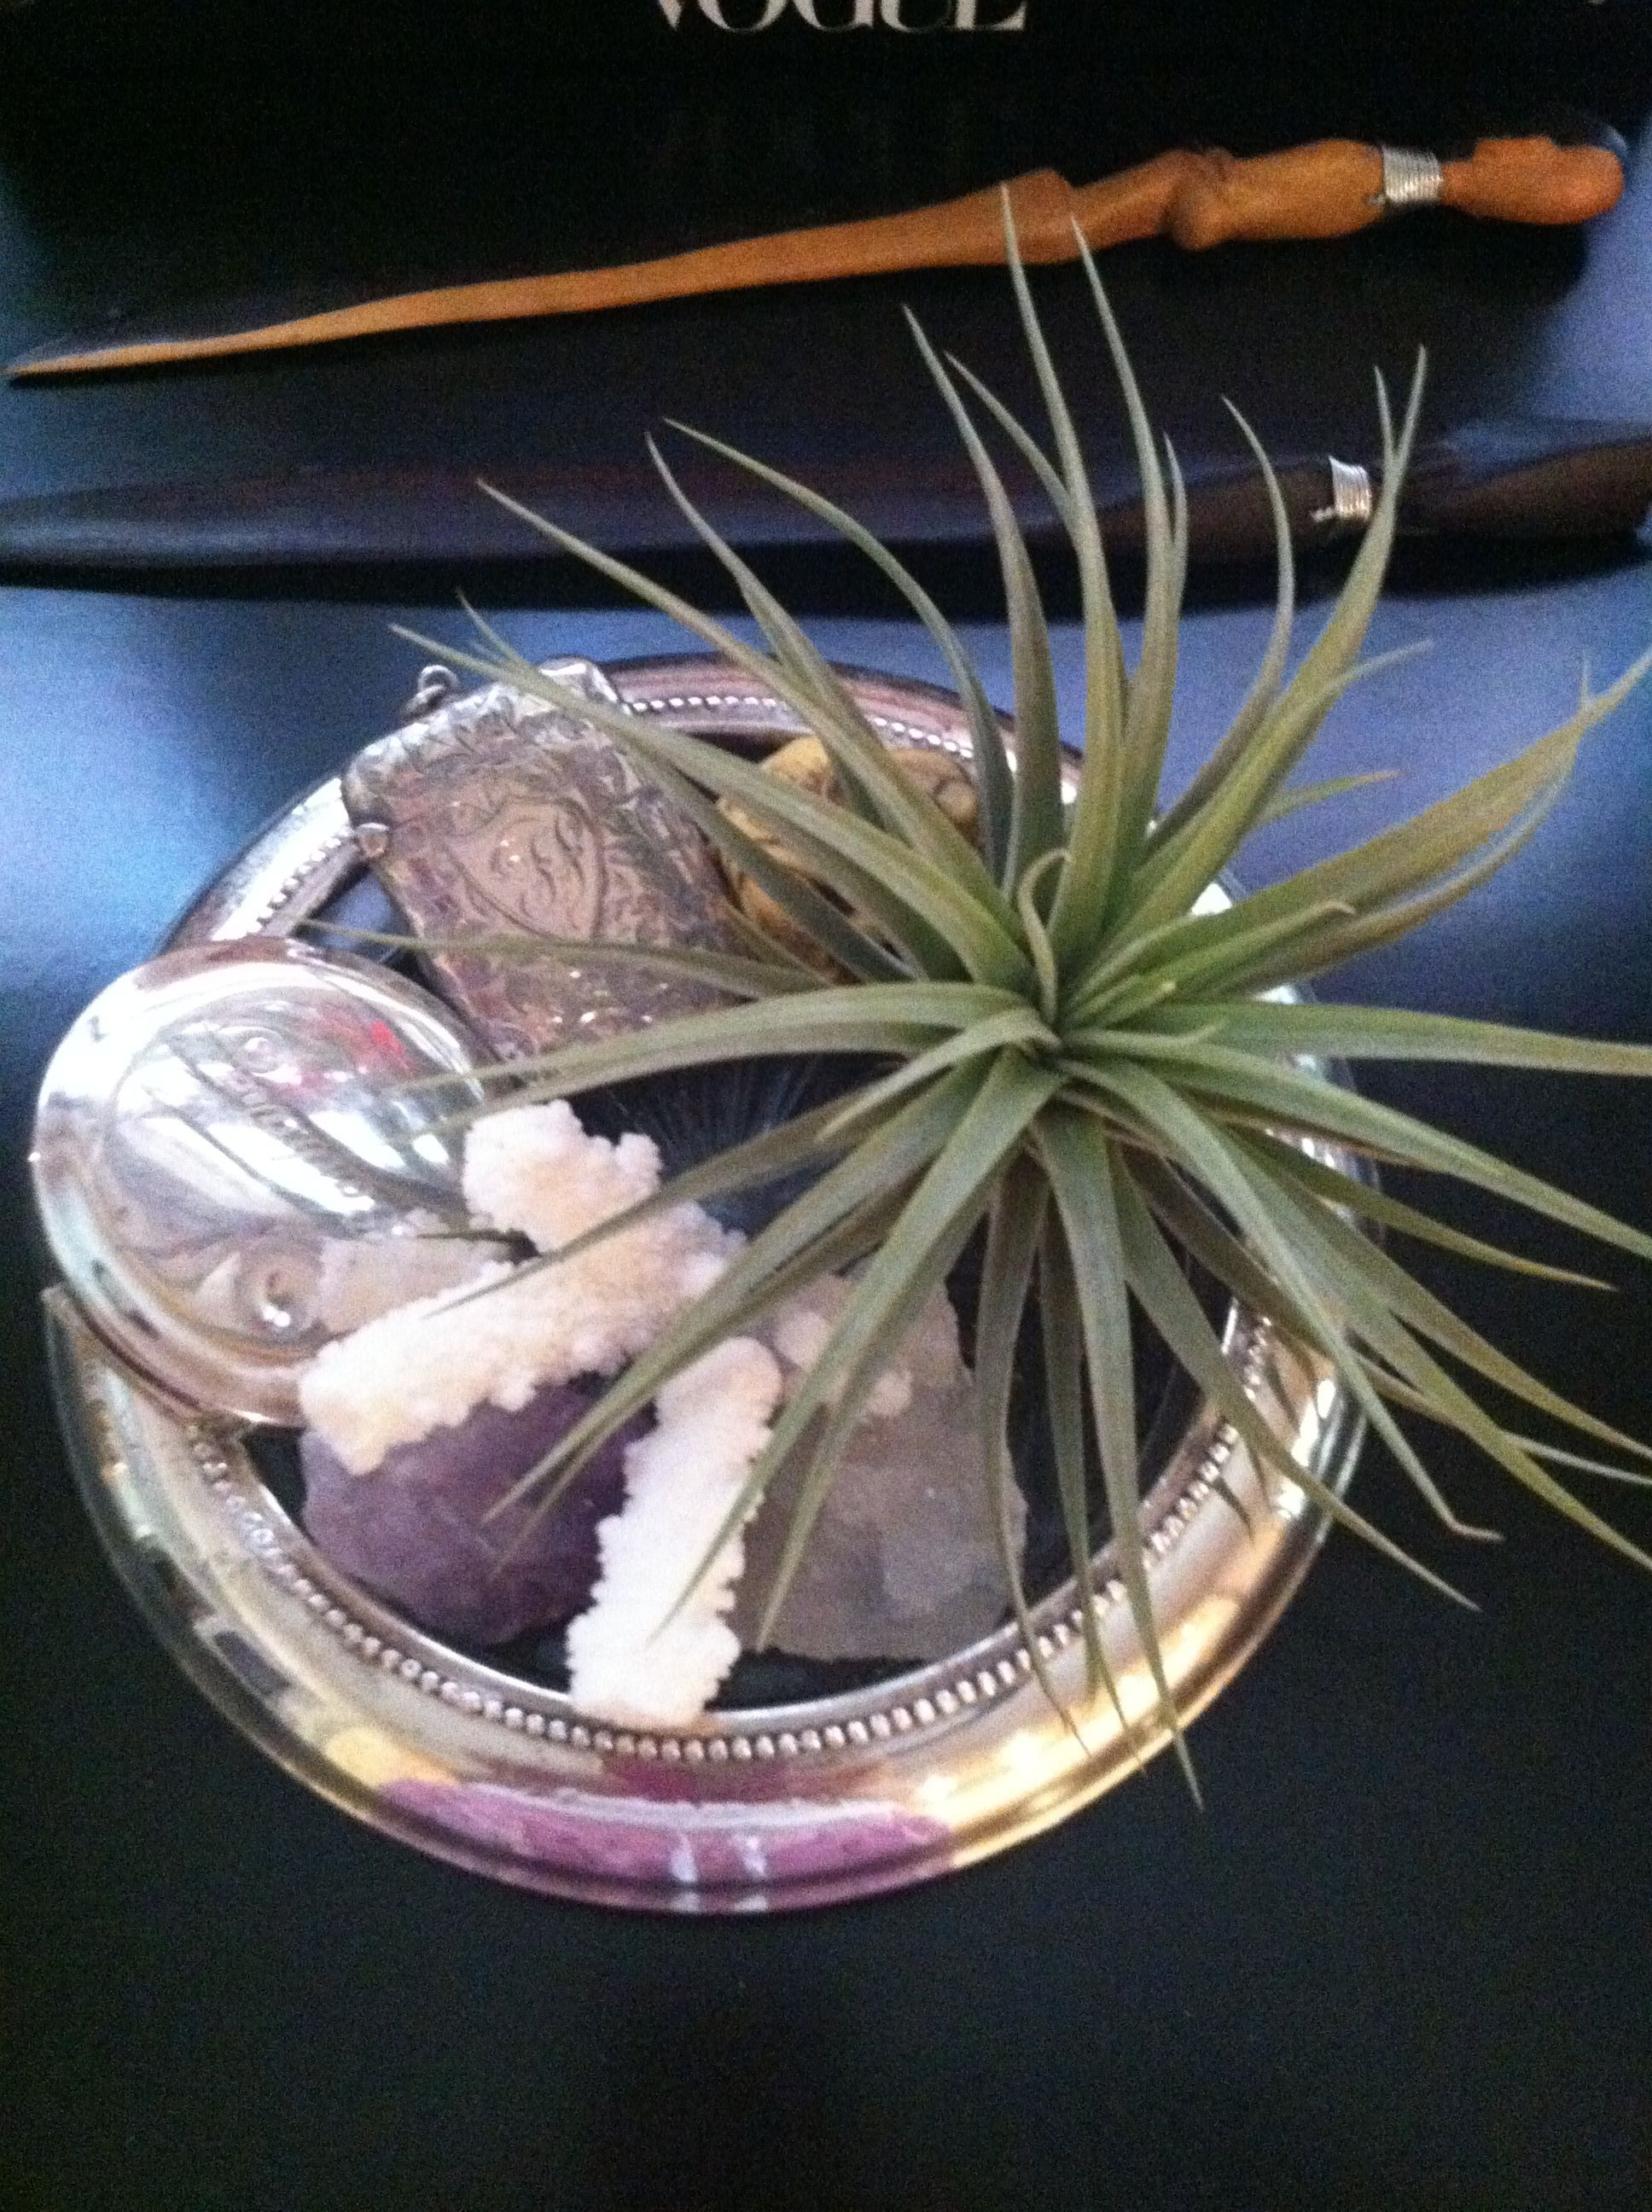 Fall 2012 is all about the airplant